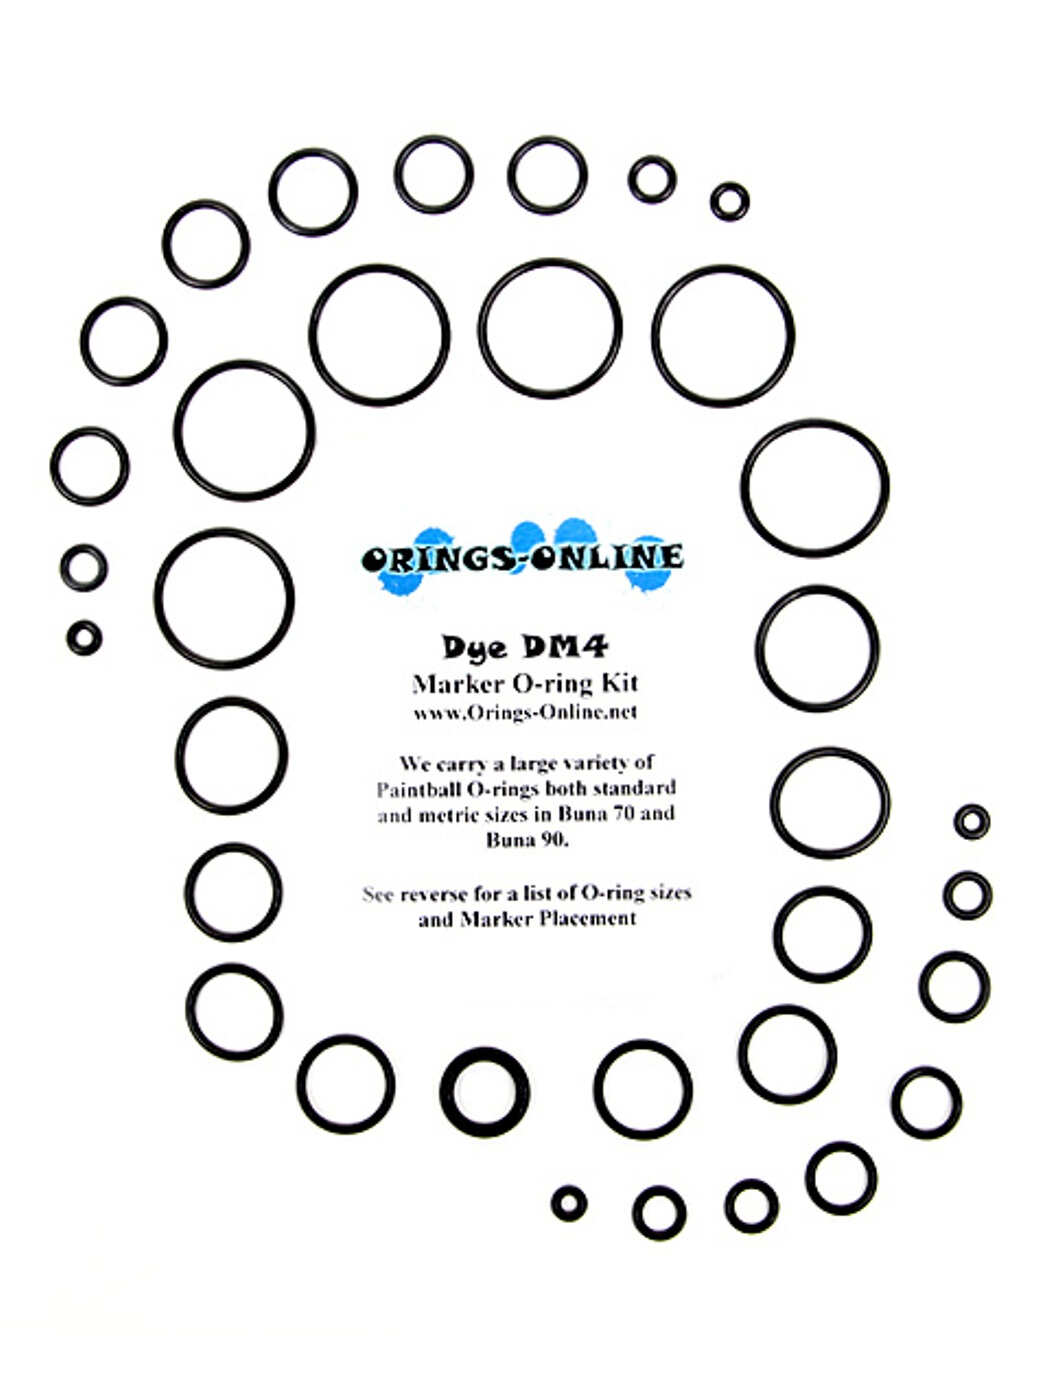 DYE - DM4 Marker O-ring Kit